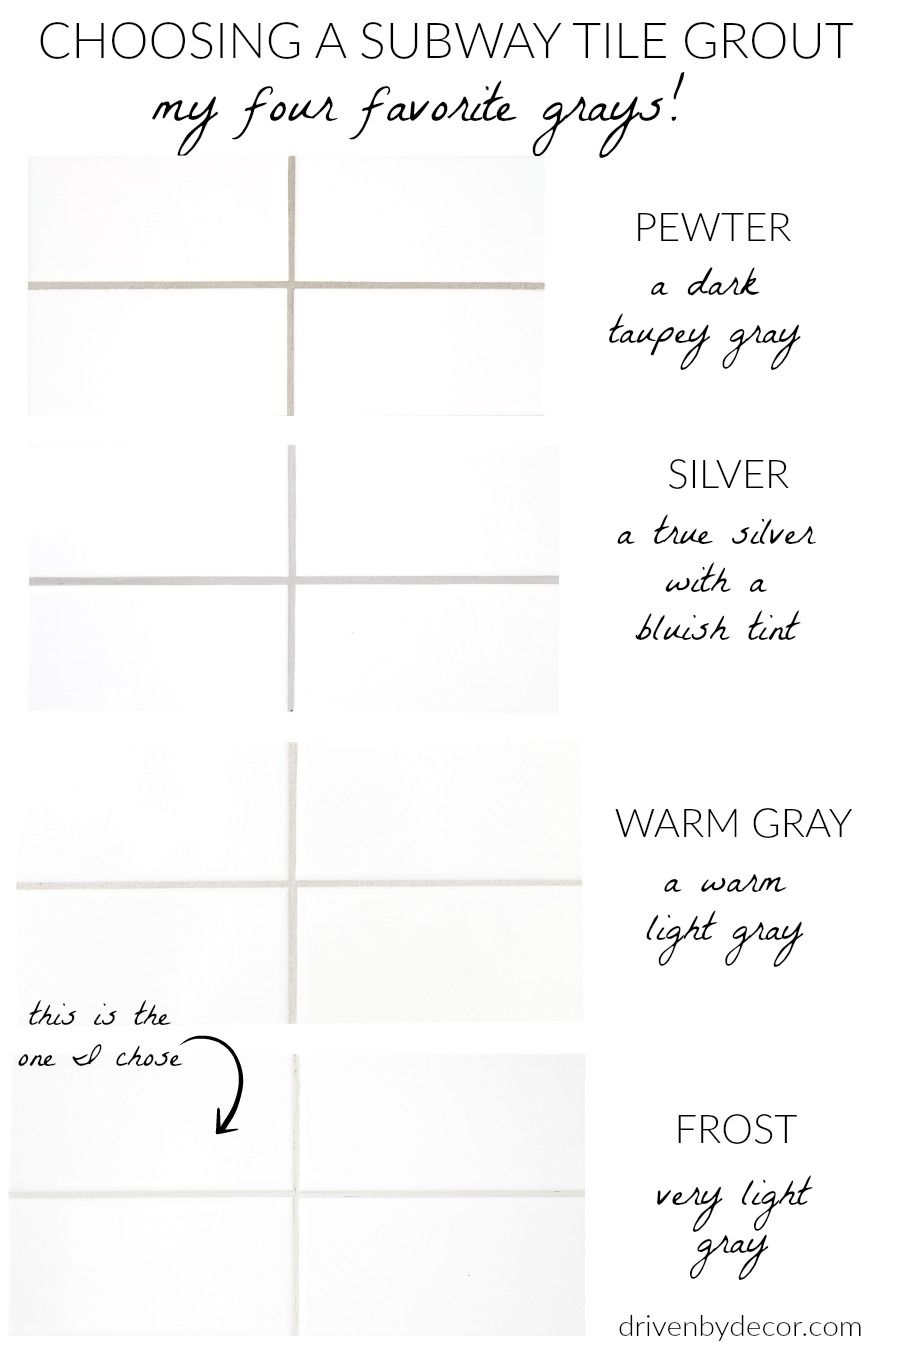 White Subway Tile with Gray Grout: My Favorite Grays | Driven by Decor